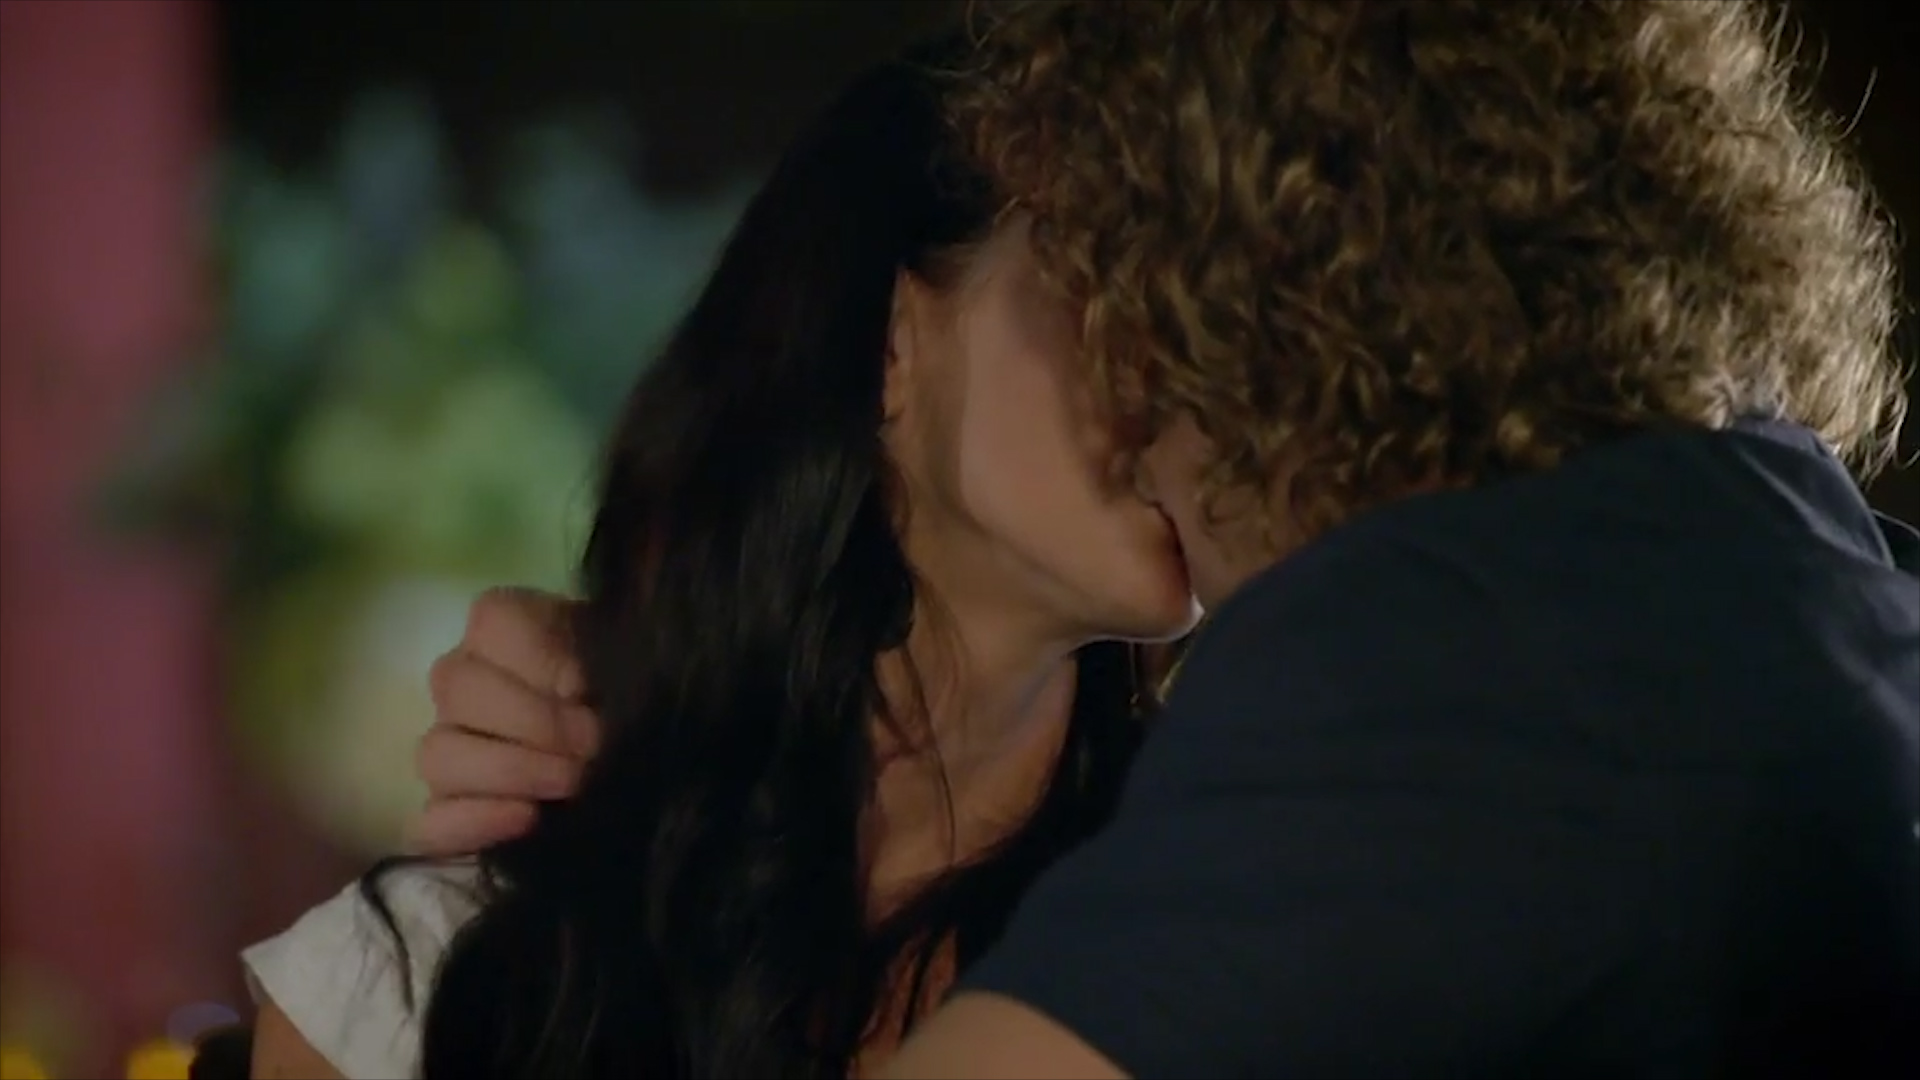 Nick Cummins gives 'The Bachelor' contestant a steamy kiss